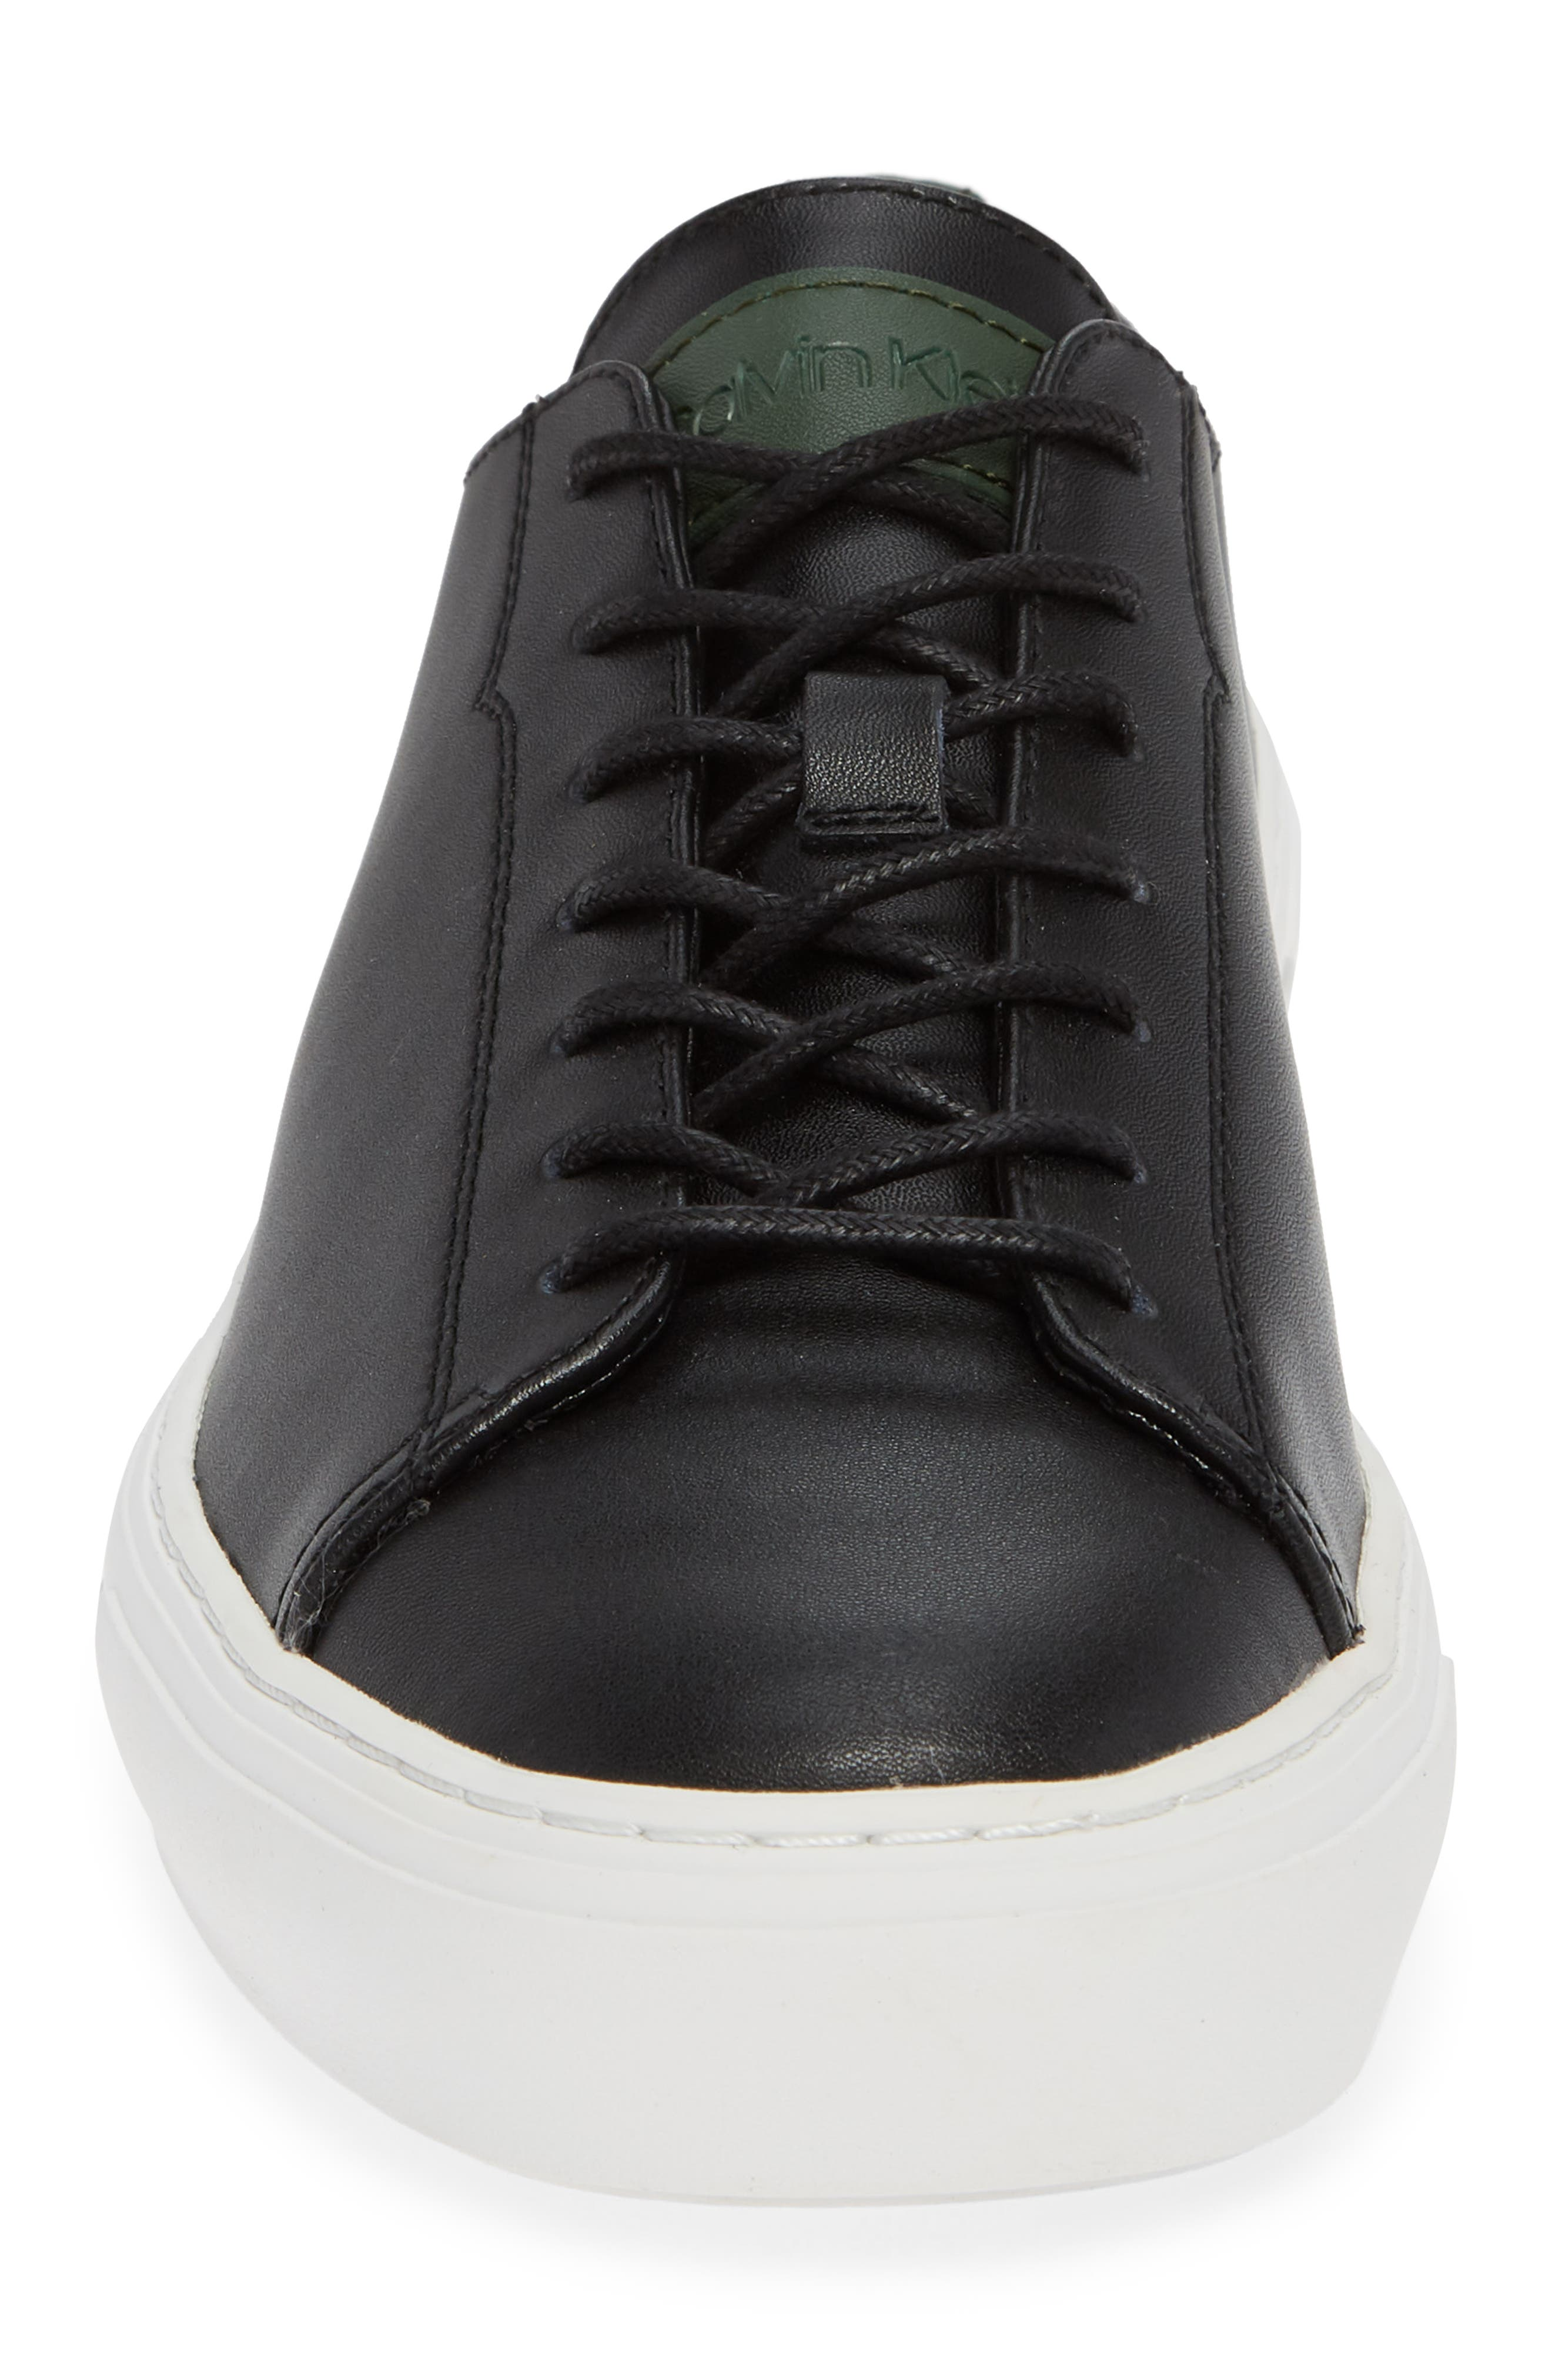 Octavian Low Top Sneaker,                             Alternate thumbnail 4, color,                             BLACK LEATHER